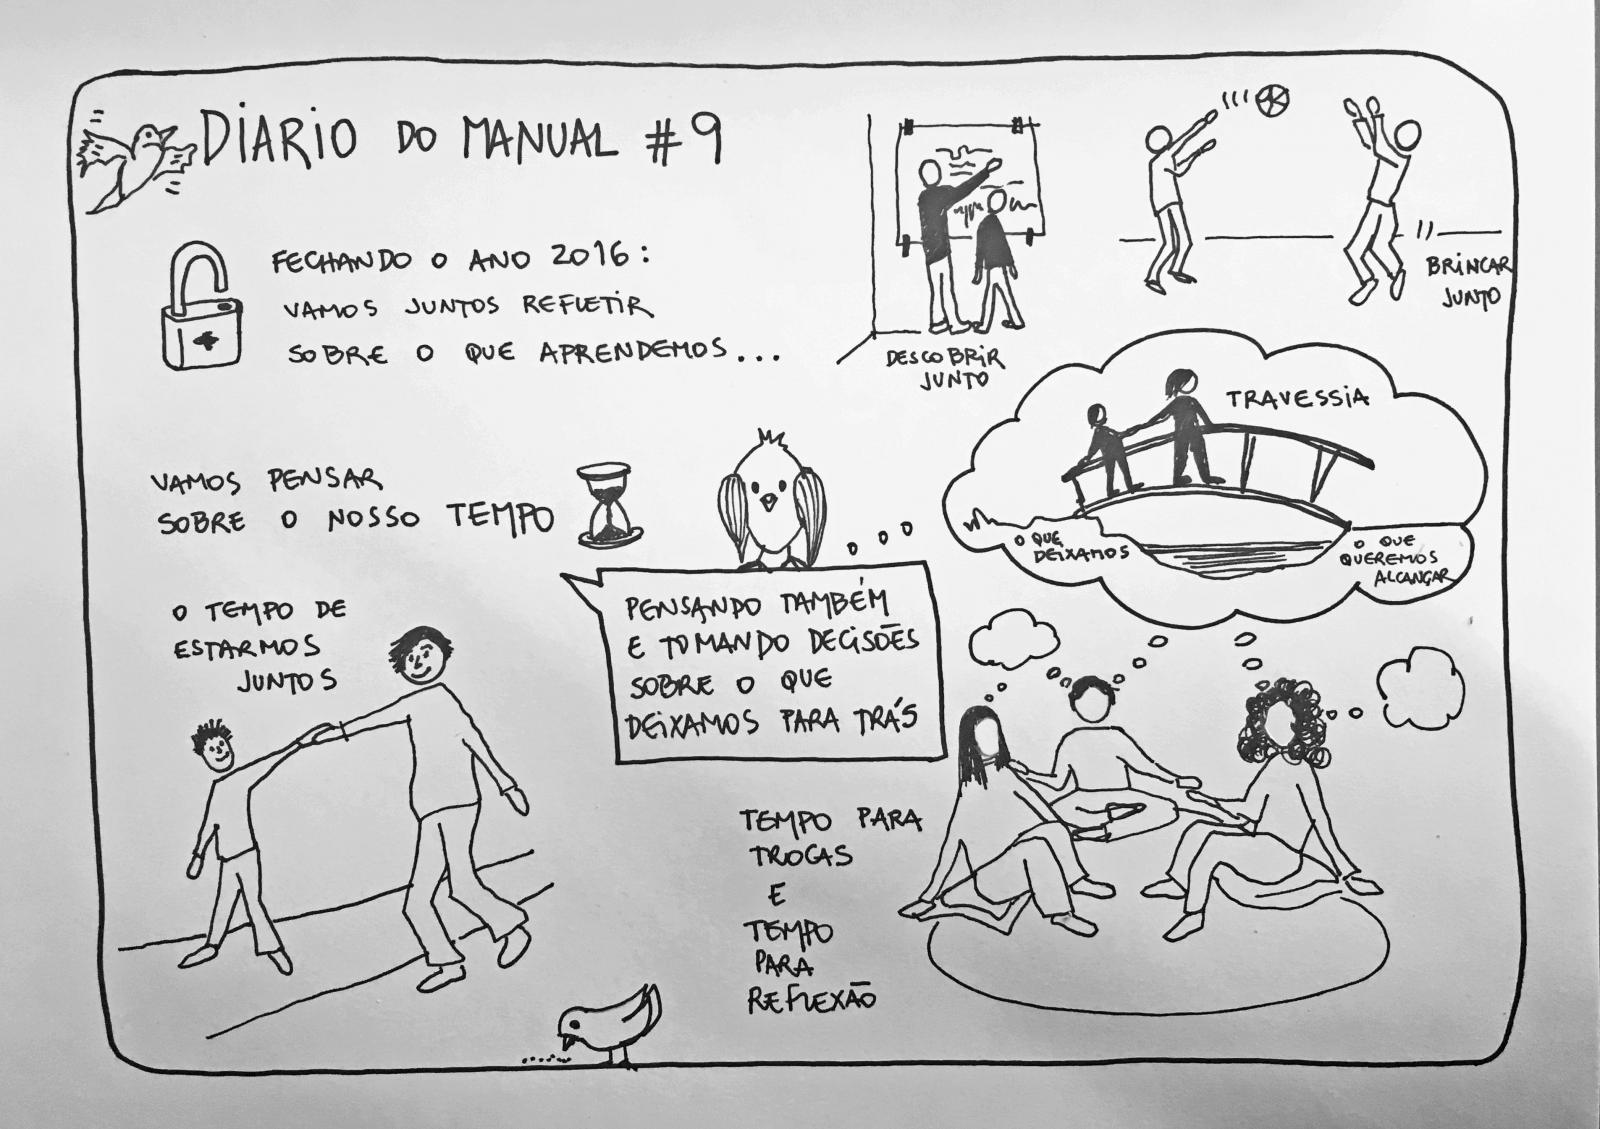 Diário do Manual #9